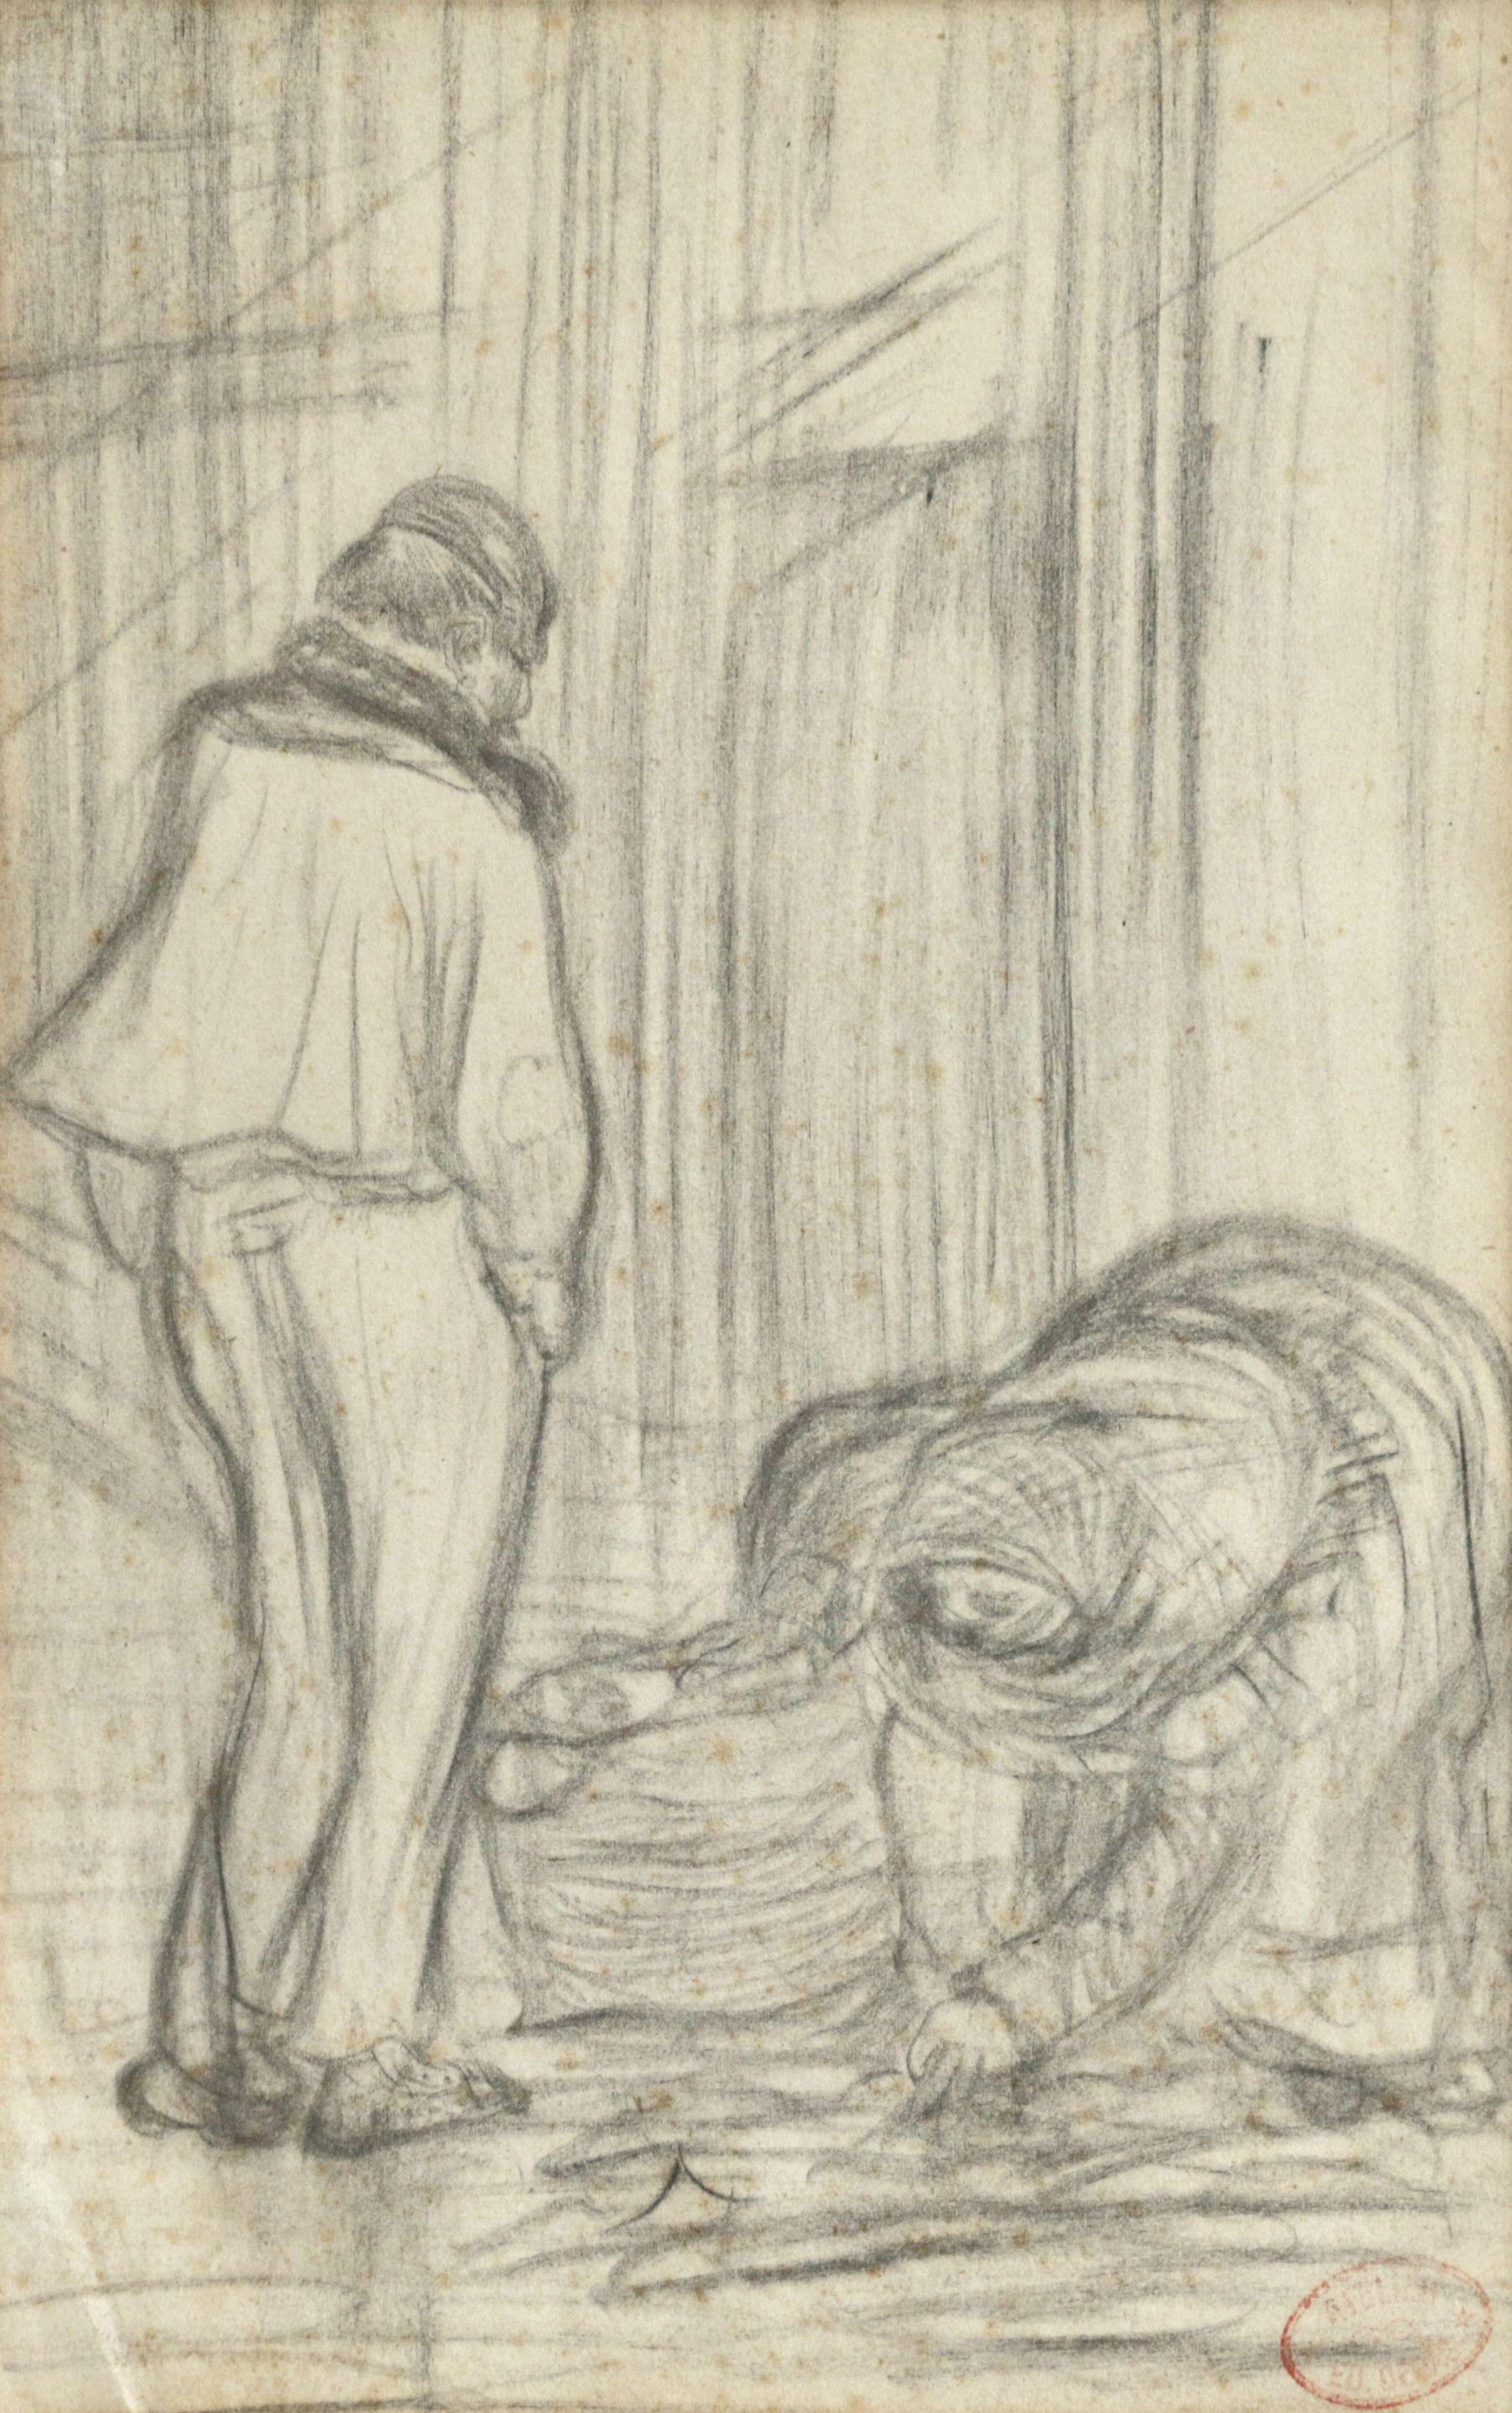 Les Chiffonniers - 19th Century Drawing, Figures in Interior by Edgar Degas